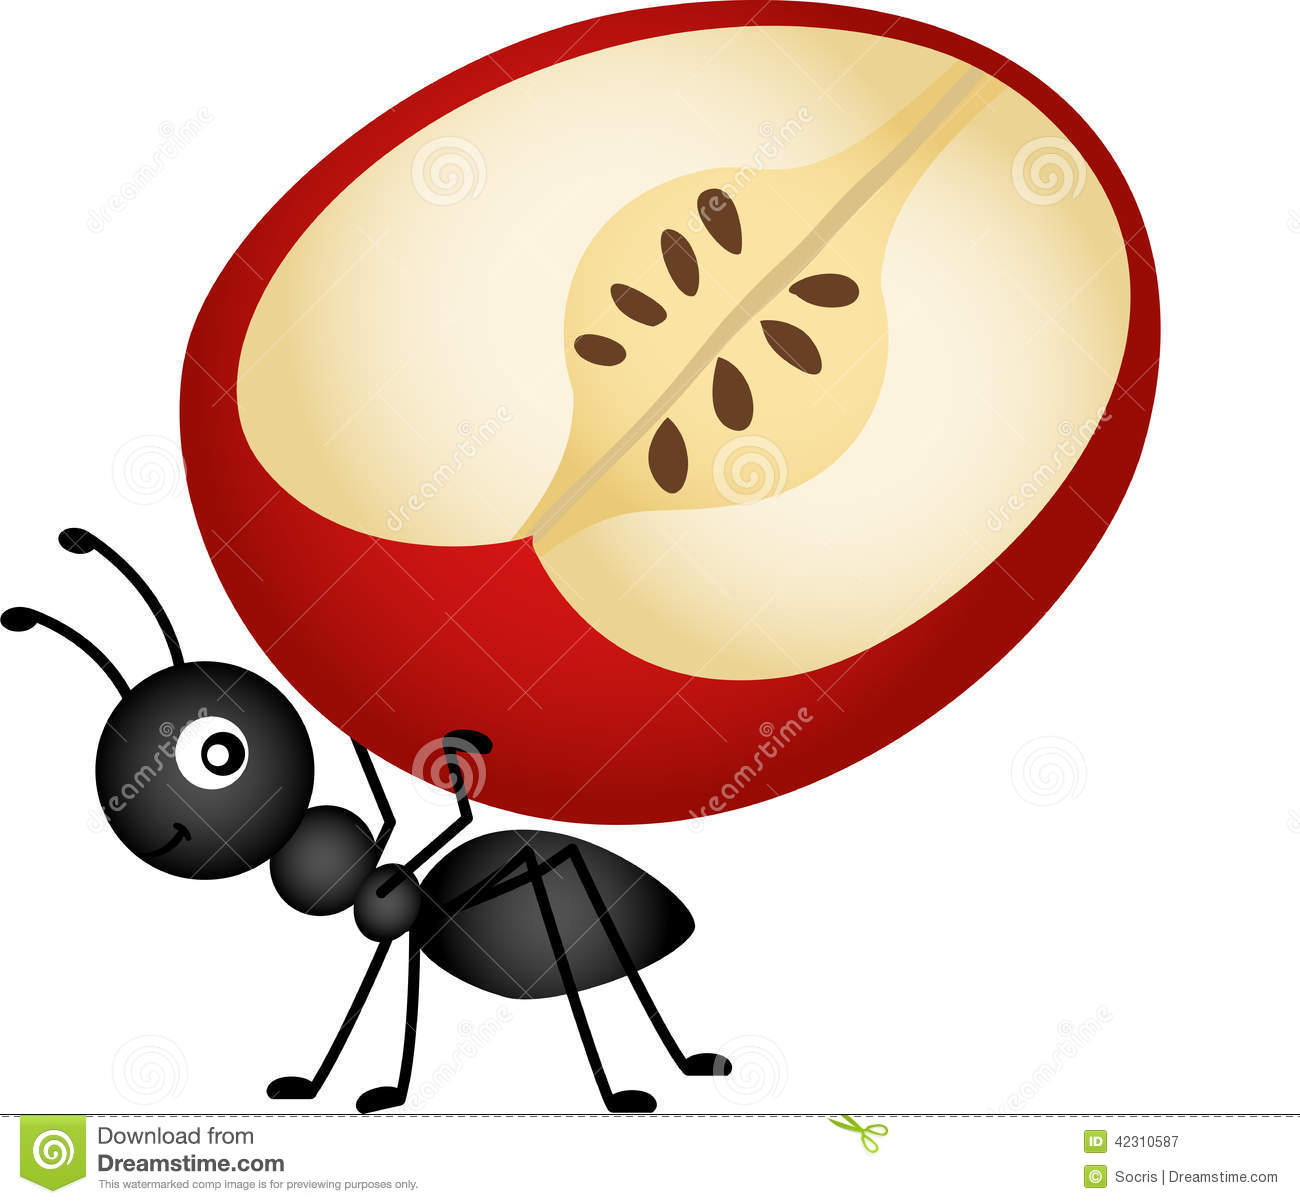 Ant Carrying Apple Slice Stock Vector. Illustration Of